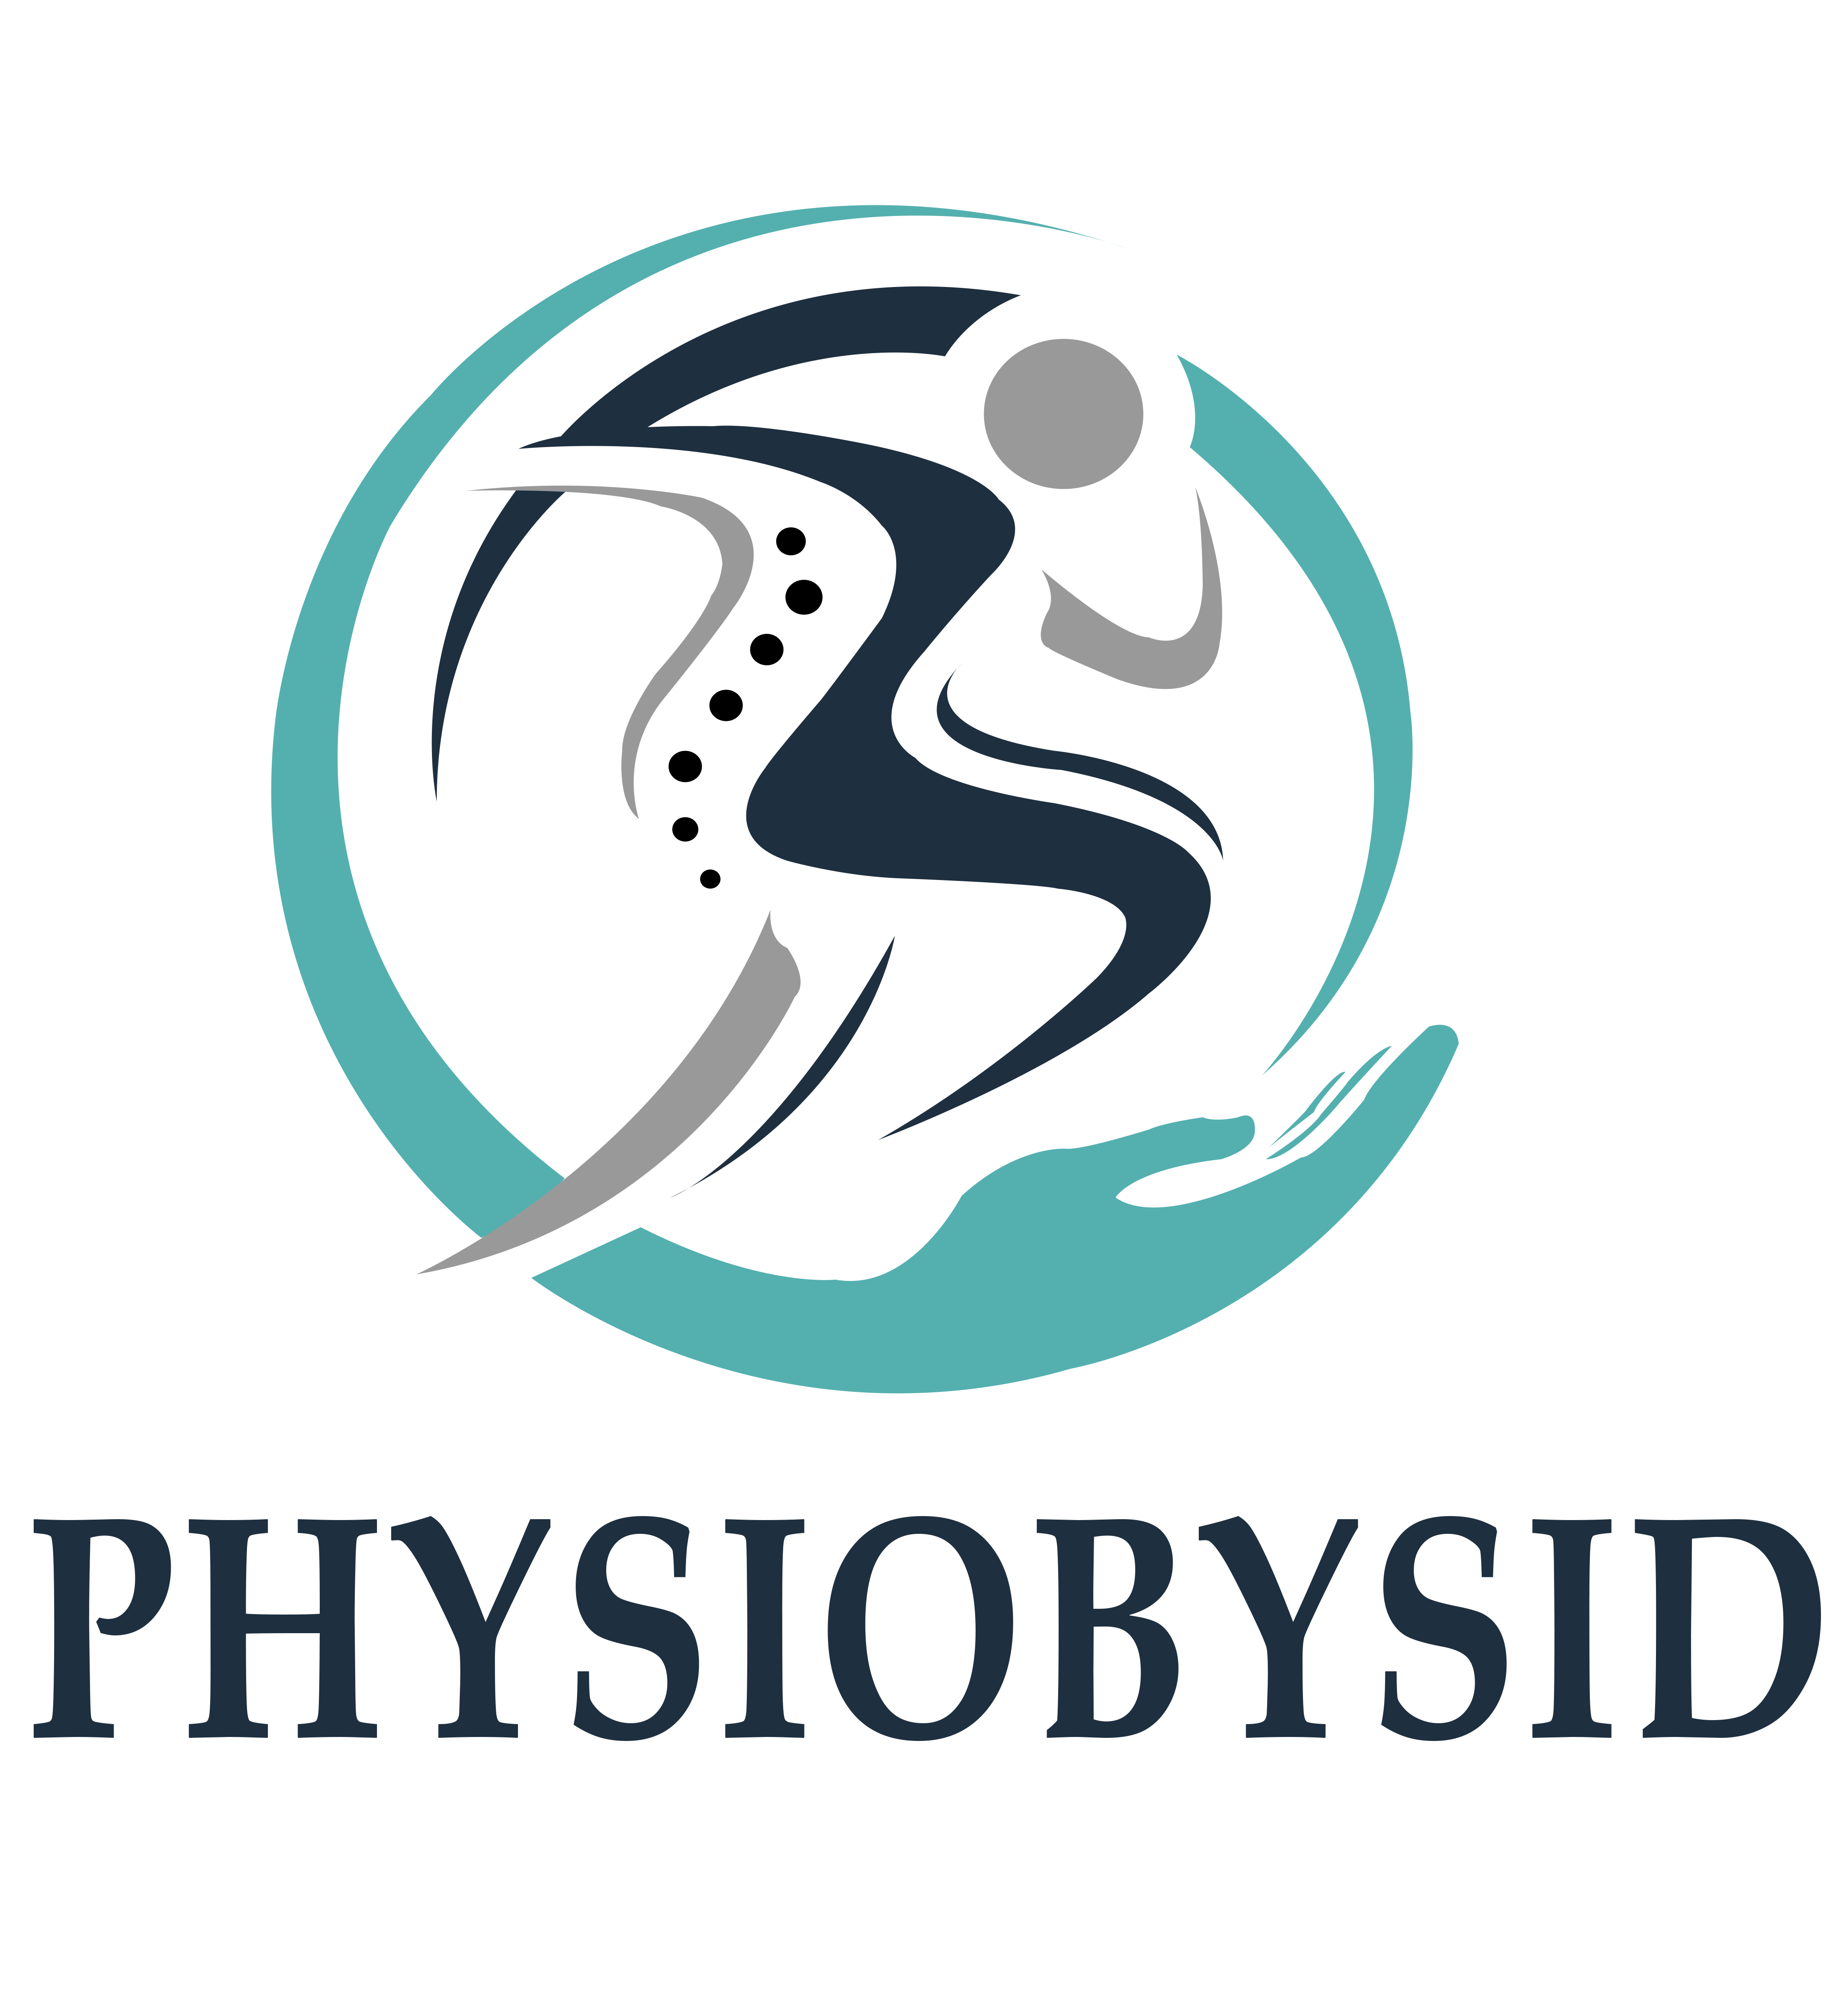 physiotherapy-logo